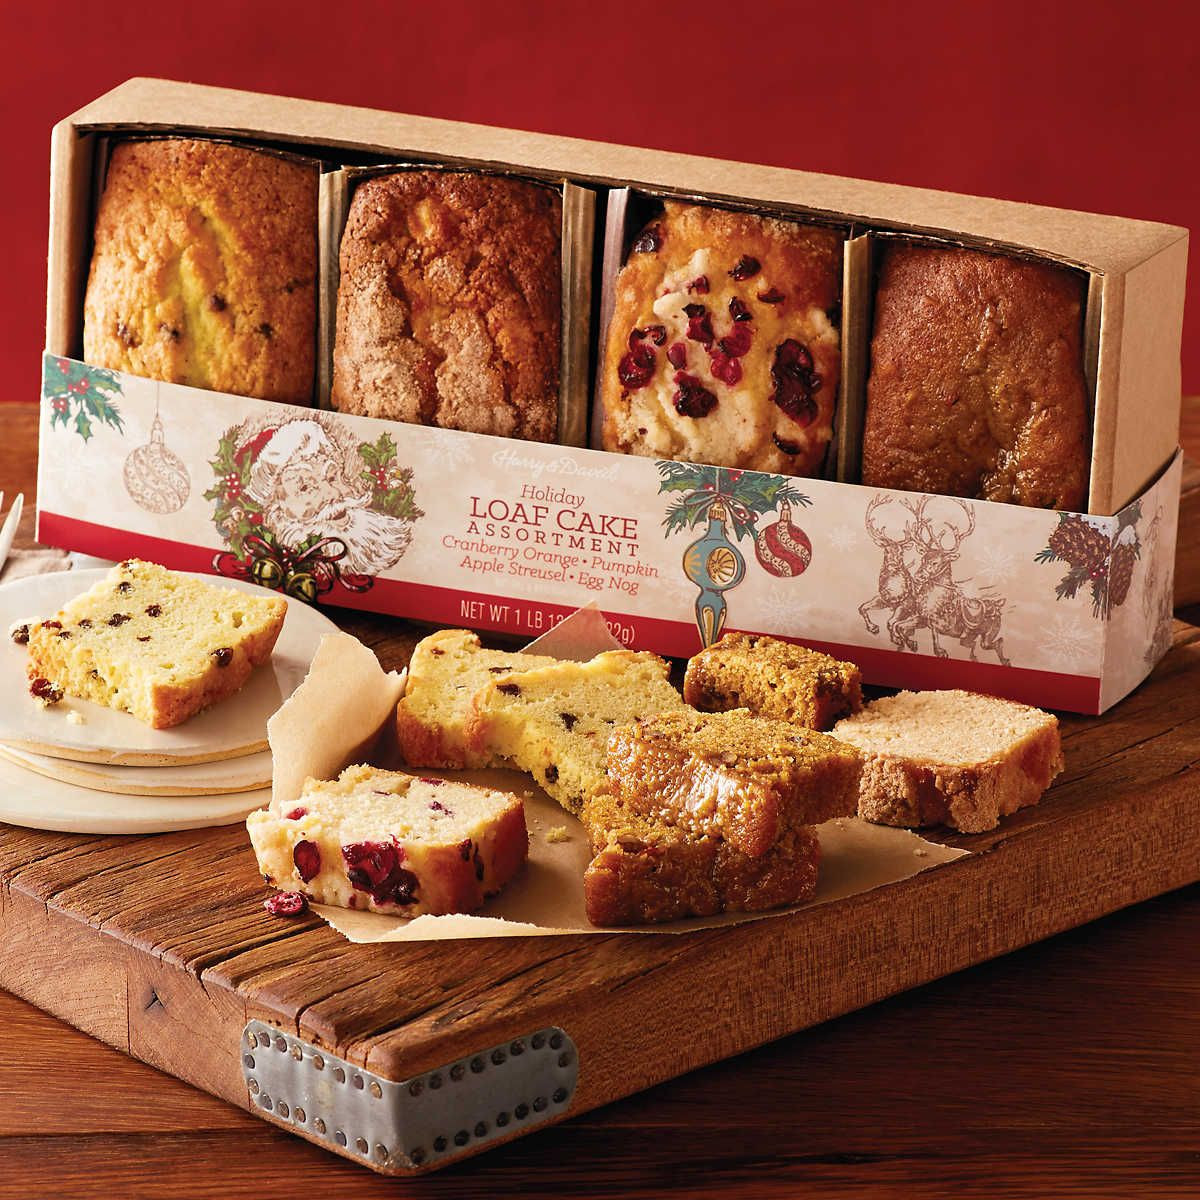 Christmas Loaf Cakes  Holiday Loaf Cakes Bakery Gifts Harry & David